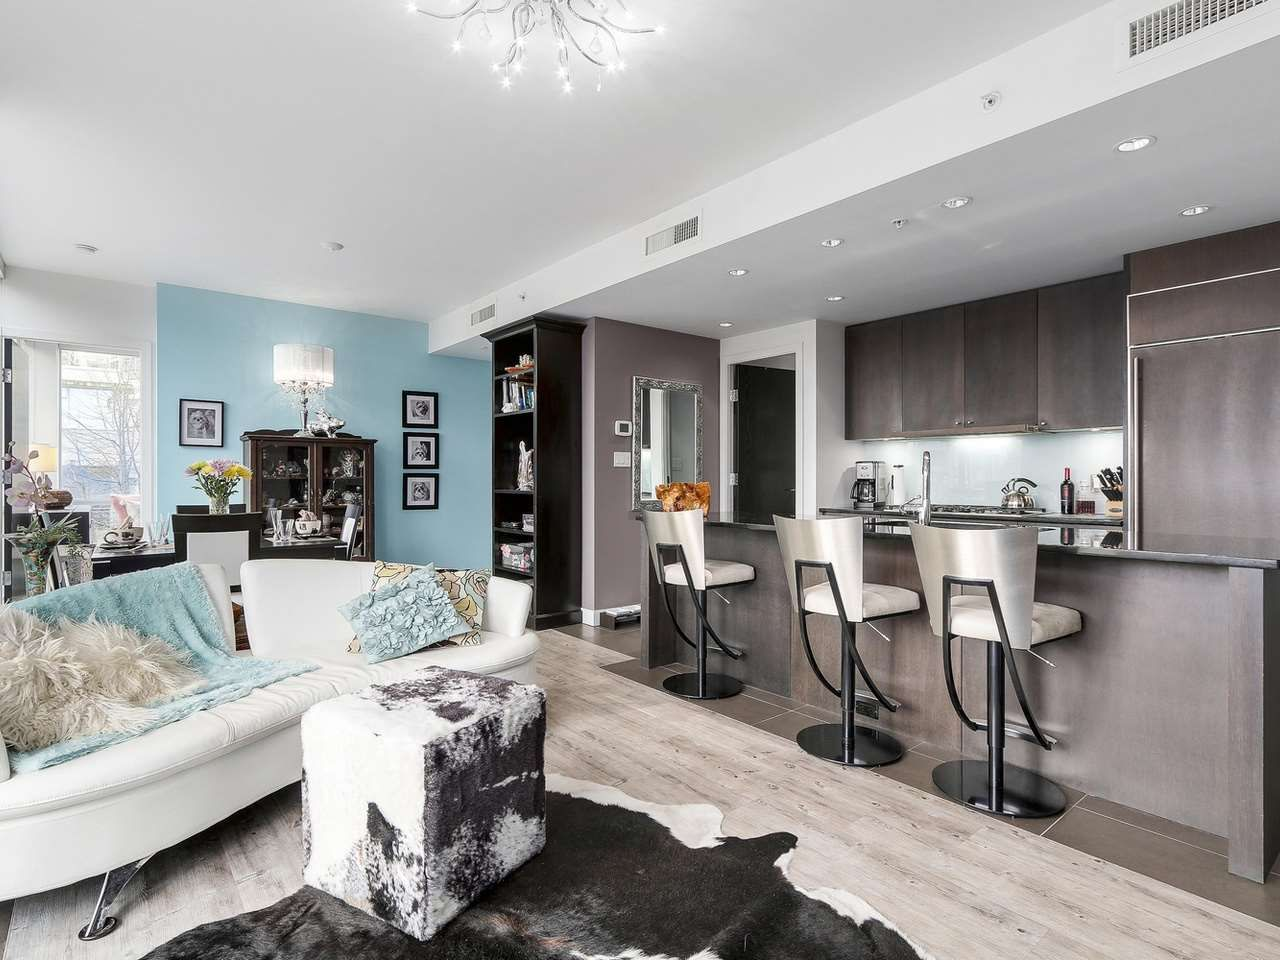 Photo 5: Photos: 401 1455 HOWE STREET in Vancouver: Yaletown Condo for sale (Vancouver West)  : MLS®# R2145939